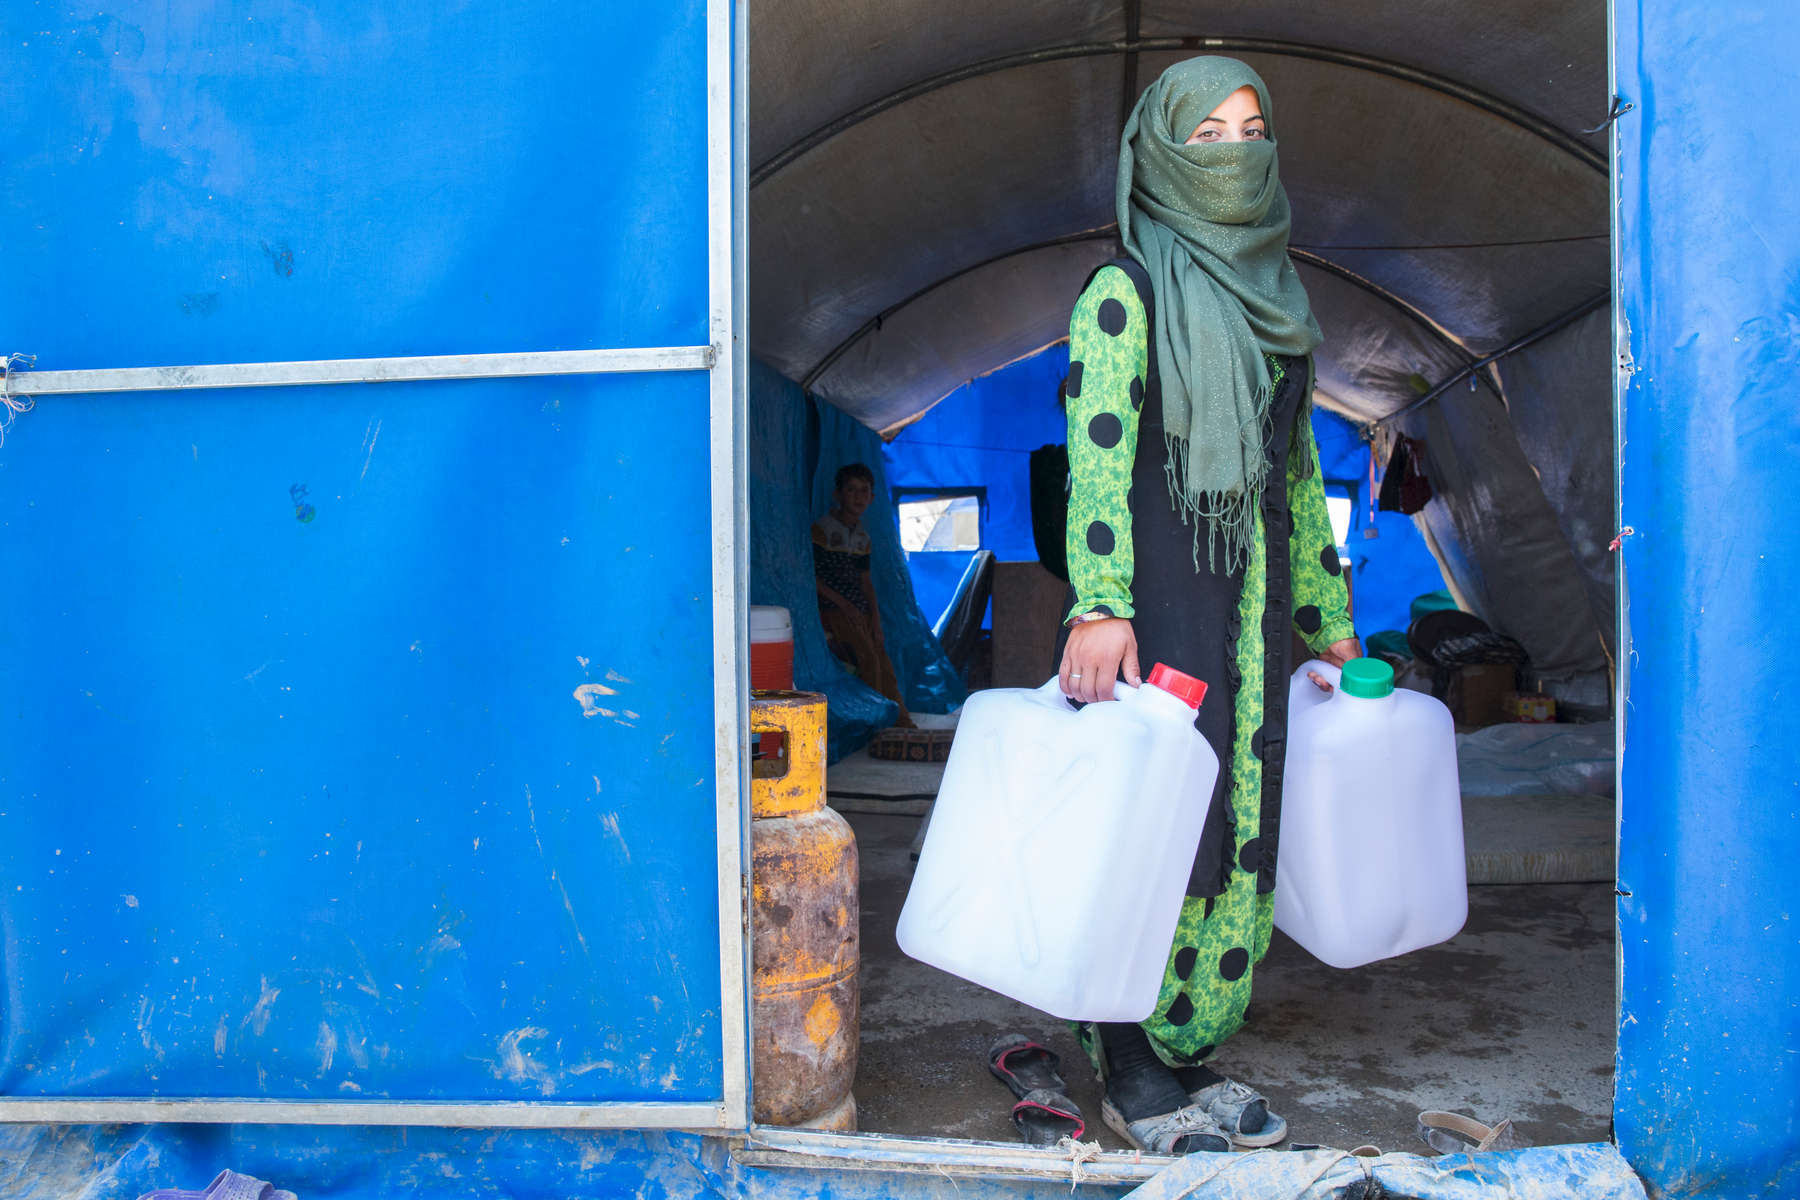 Freeal Jummah, 15, holds two jerrycans that her family received as part of a Mercy Corps NFI distribution. Hers is one of 400 families that received NFI kits from Mercy Corps on this day; the kit included 6 blankets, 2 jerrycans, a tarp and a rope.Before the crisis, her family farmed for a living. They fled the fighting in Shirqat, south of Mosul, and have been in IDP camps since January. Freeal and her siblings wait in line for water twice a day for up to an hour. Her mother, Hela Salama Jummah, said {quote}This is my country, my birthplace. I would hope to be able to go home.""